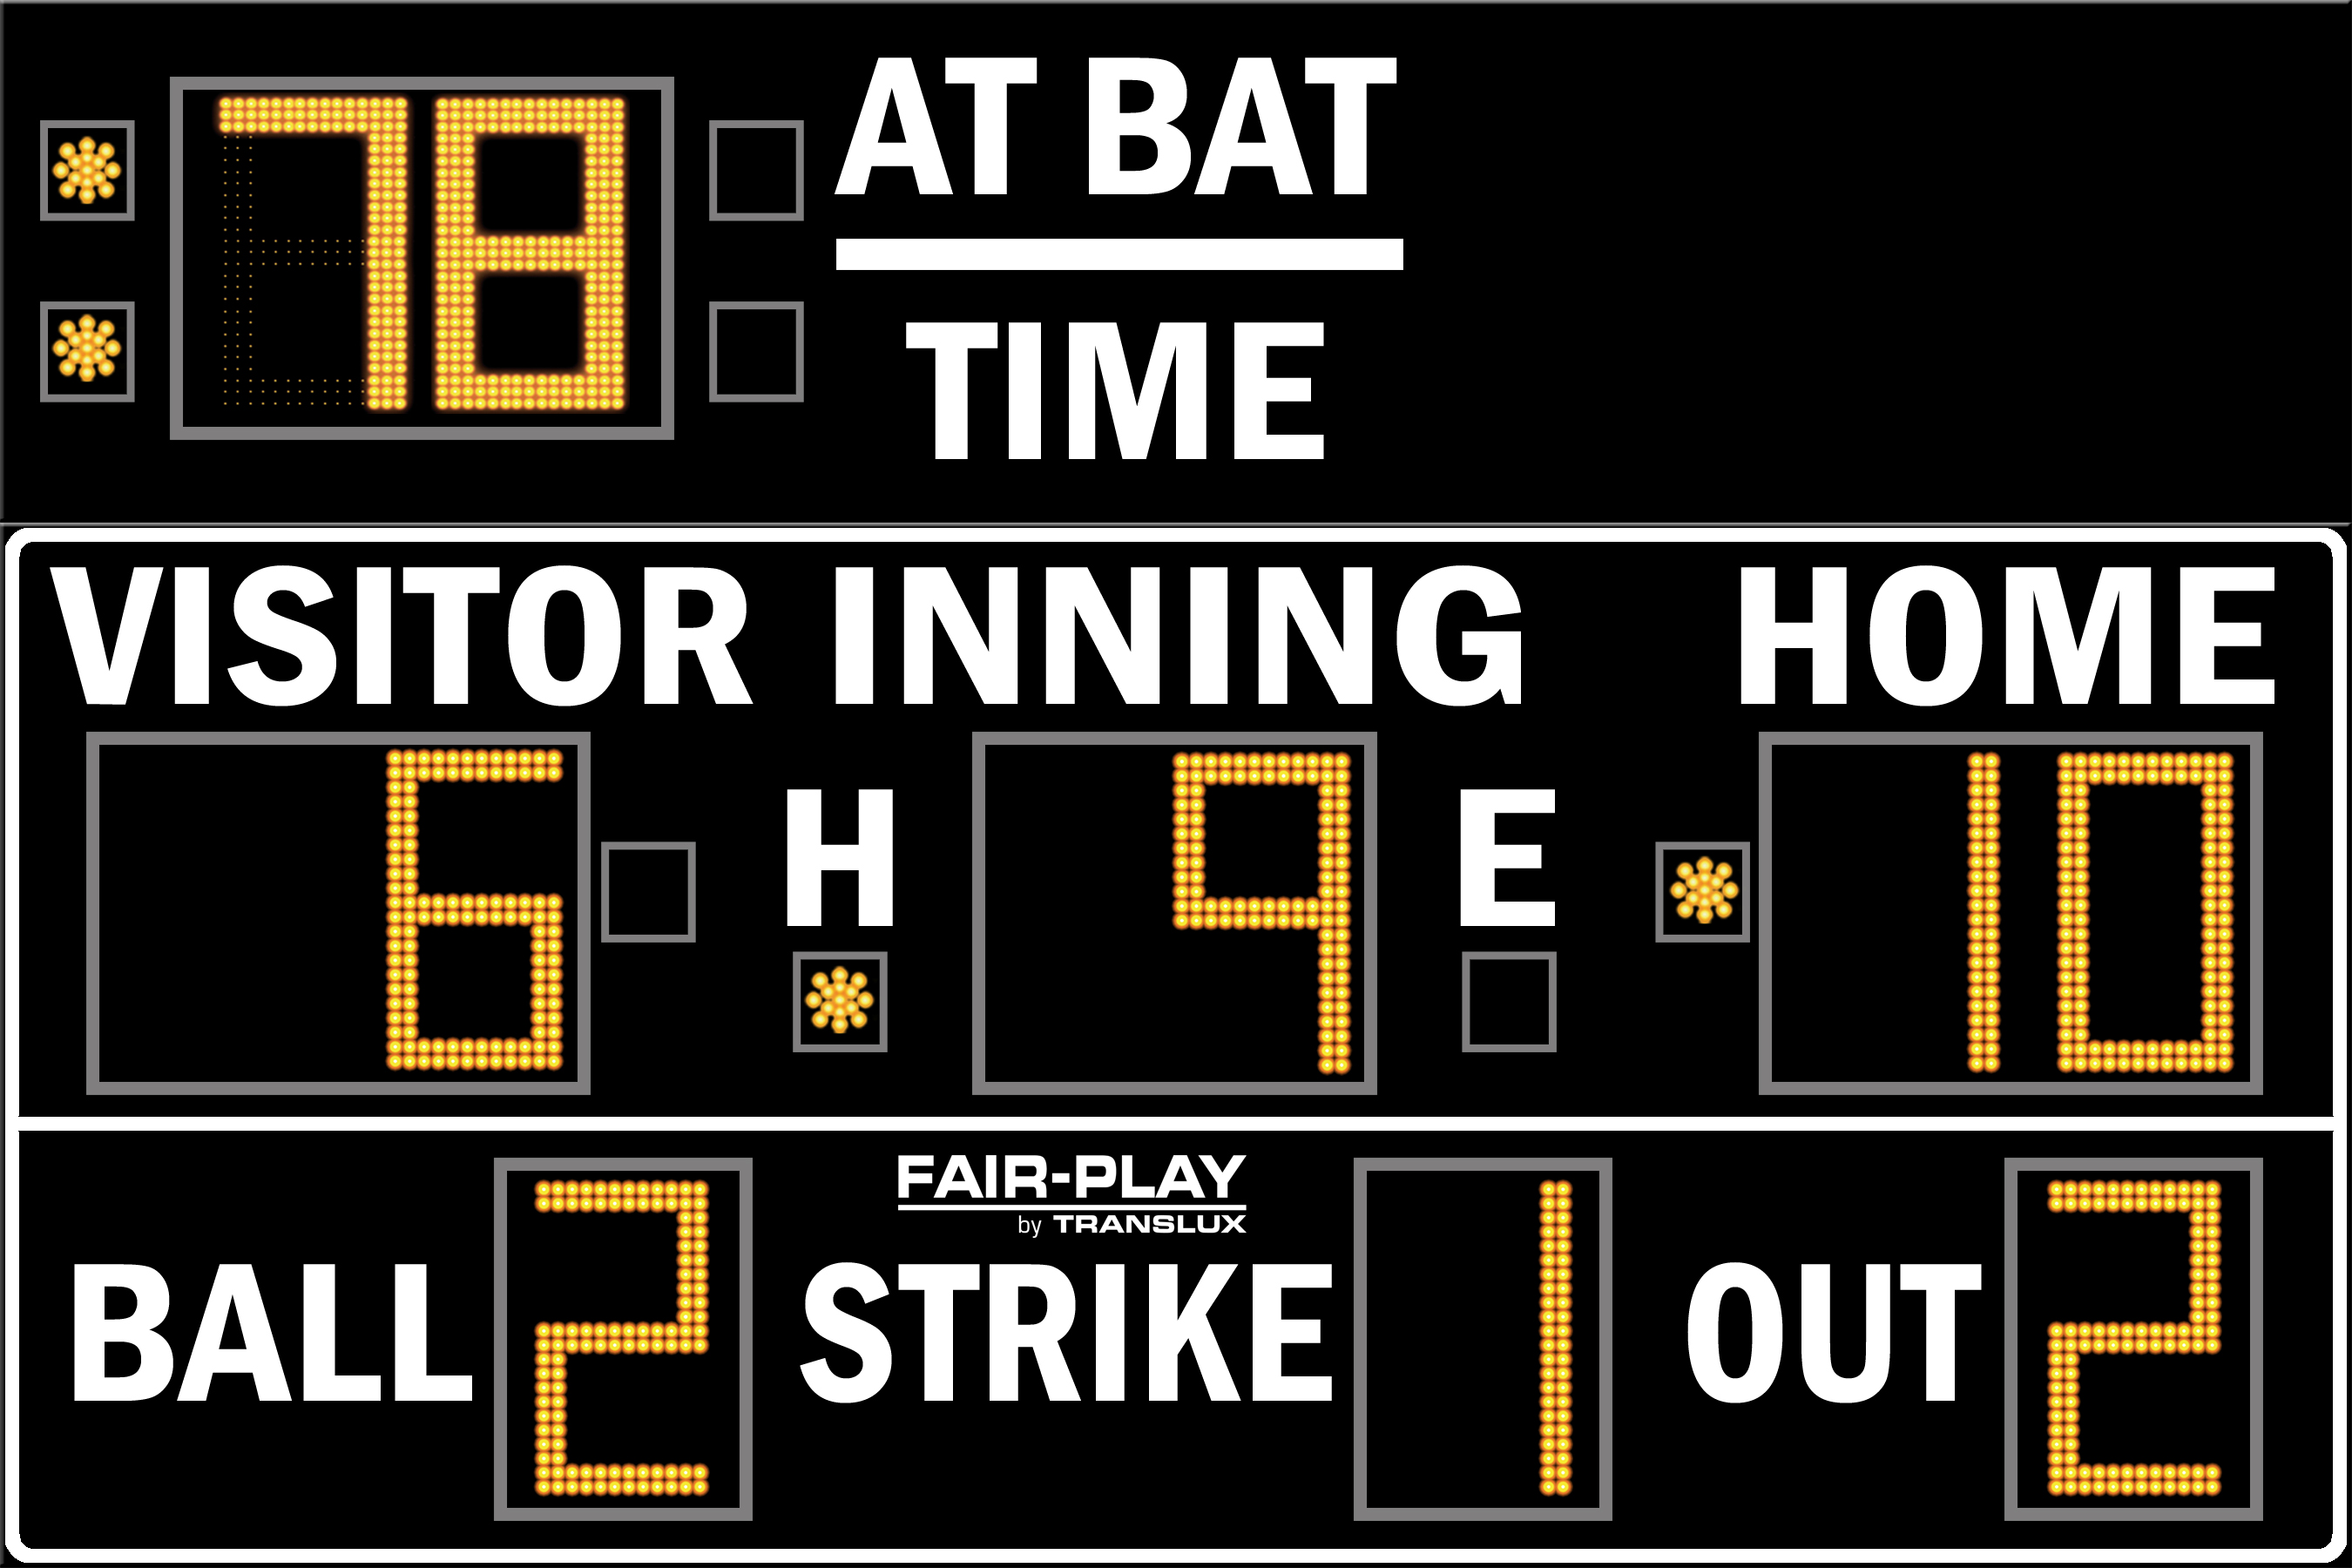 Fair-Play BA-7209MP-2 Baseball Scoreboard (6′ x 9′)